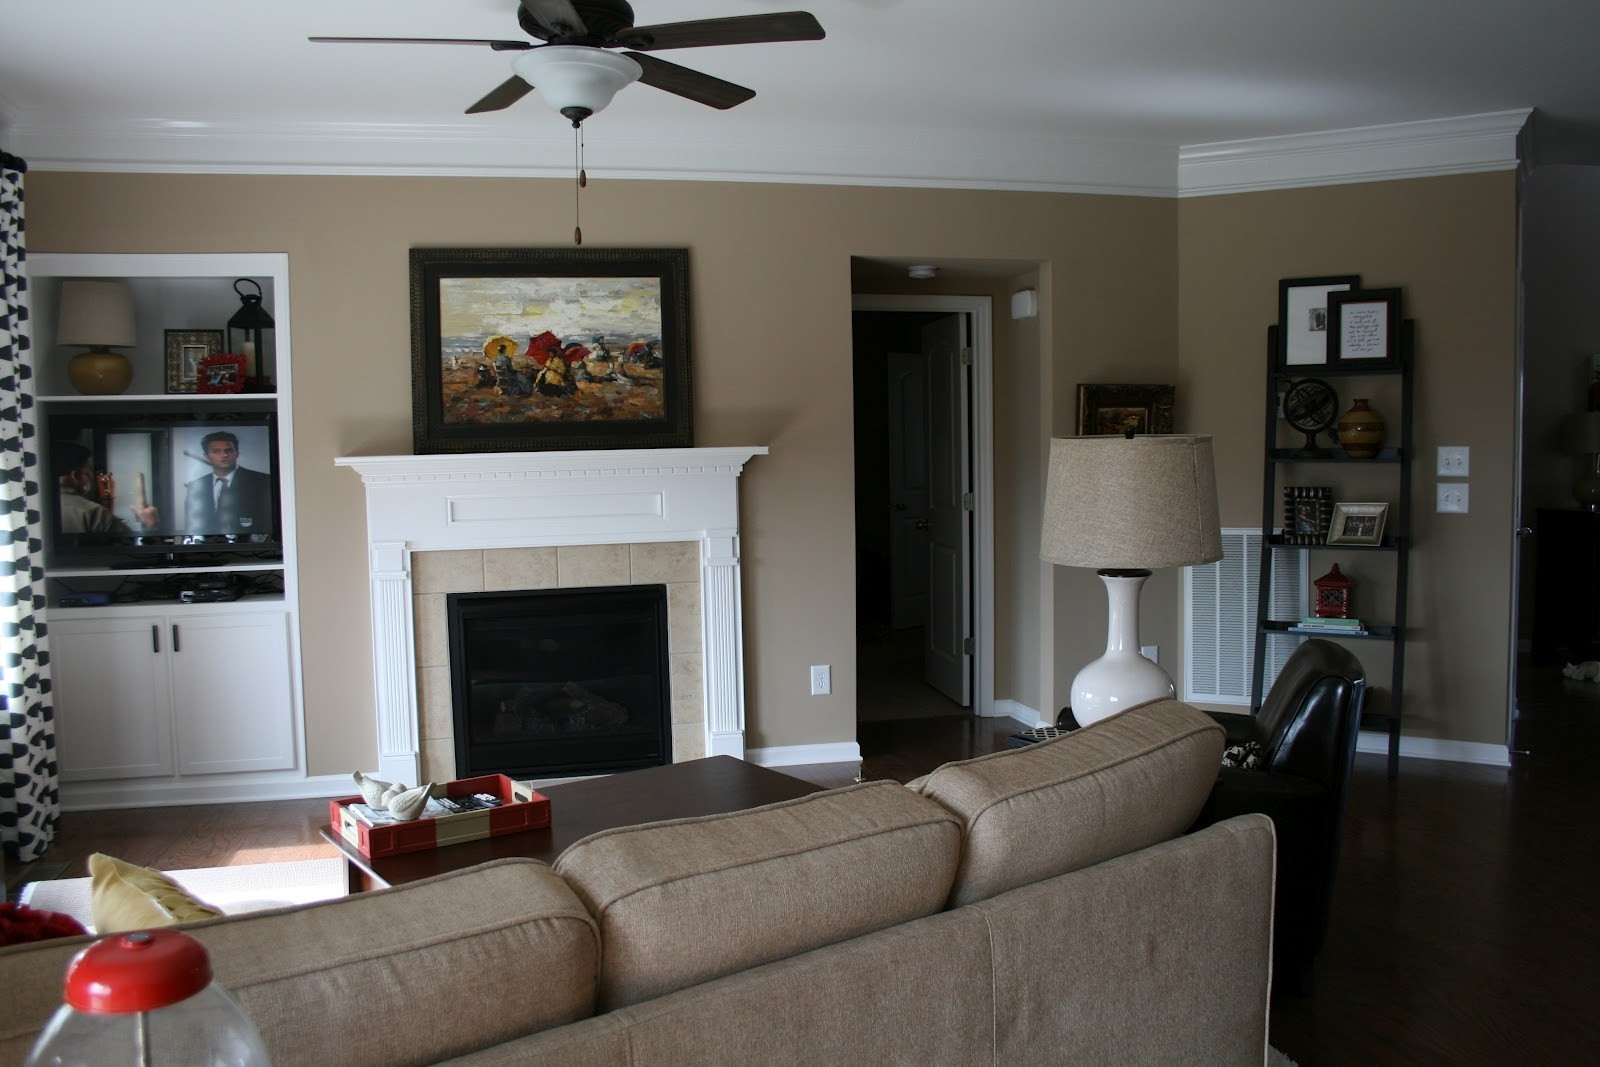 Best ideas about Accent Wall Ideas For Living Room . Save or Pin Top 15 of Wall Accents For Tan Room Now.